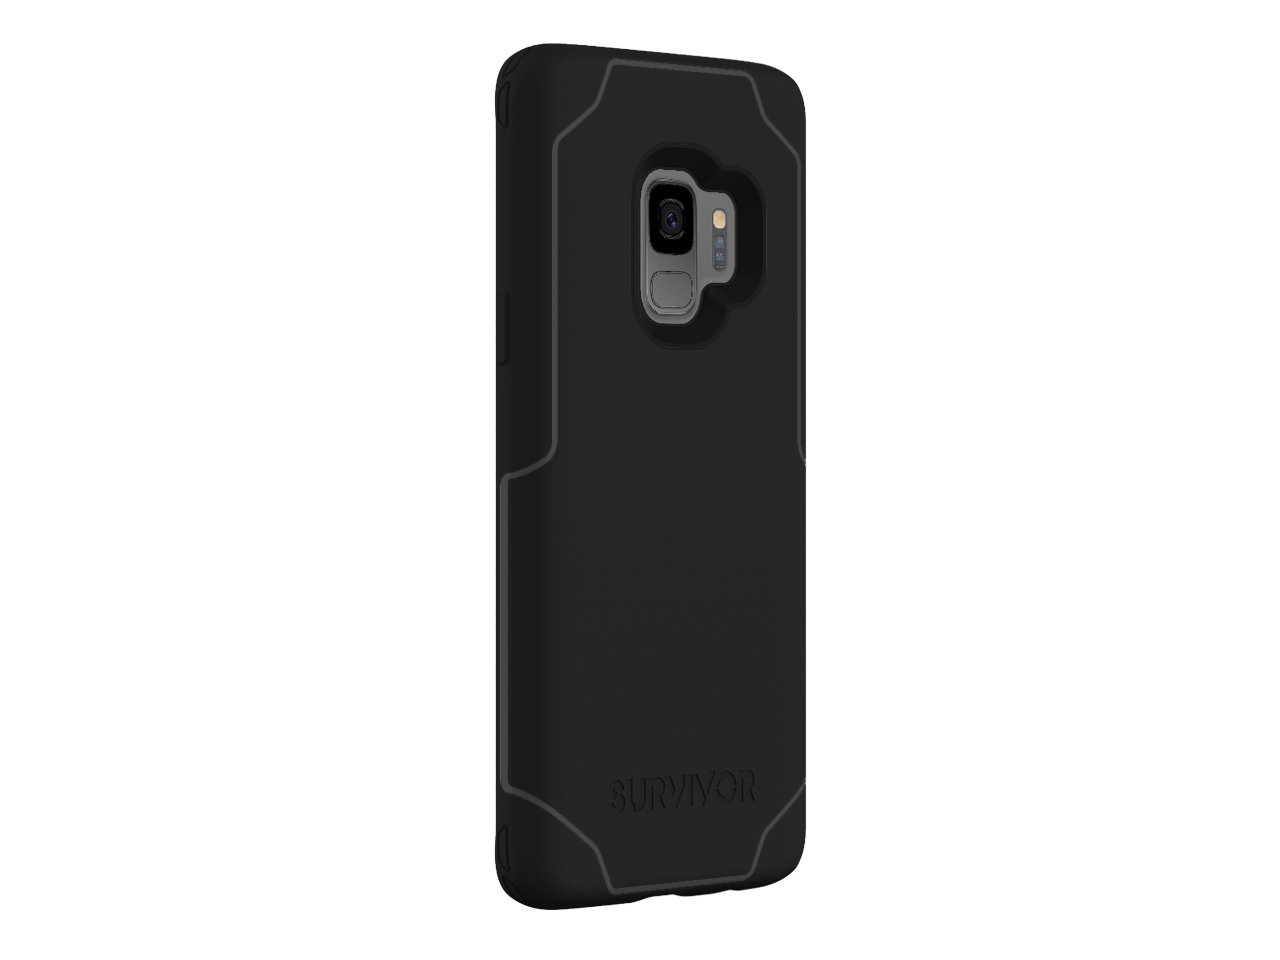 low priced af46d 44256 Griffin Survivor Strong Samsung Galaxy S9 Case with Slim and  Shock-Absorbing Design and Qi Charge Compatible - Black/Dark Grey